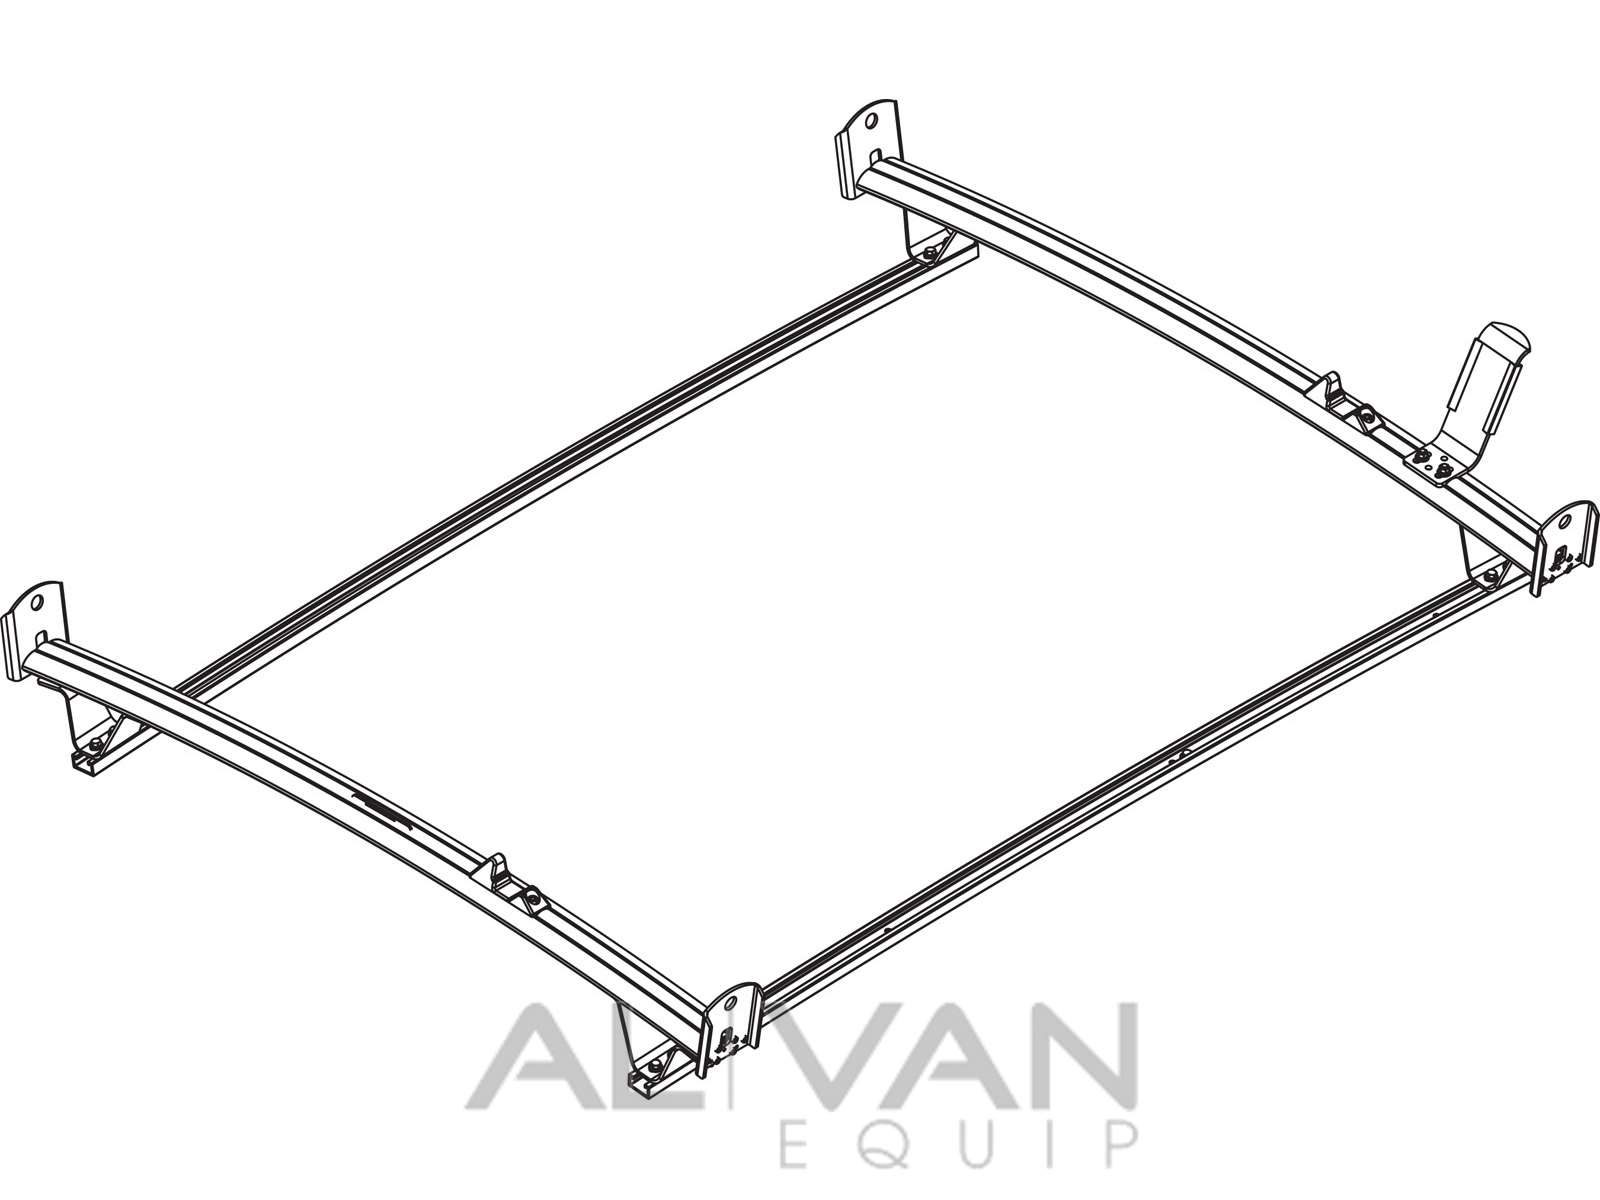 standard van ladder rack  nissan nv200  city express